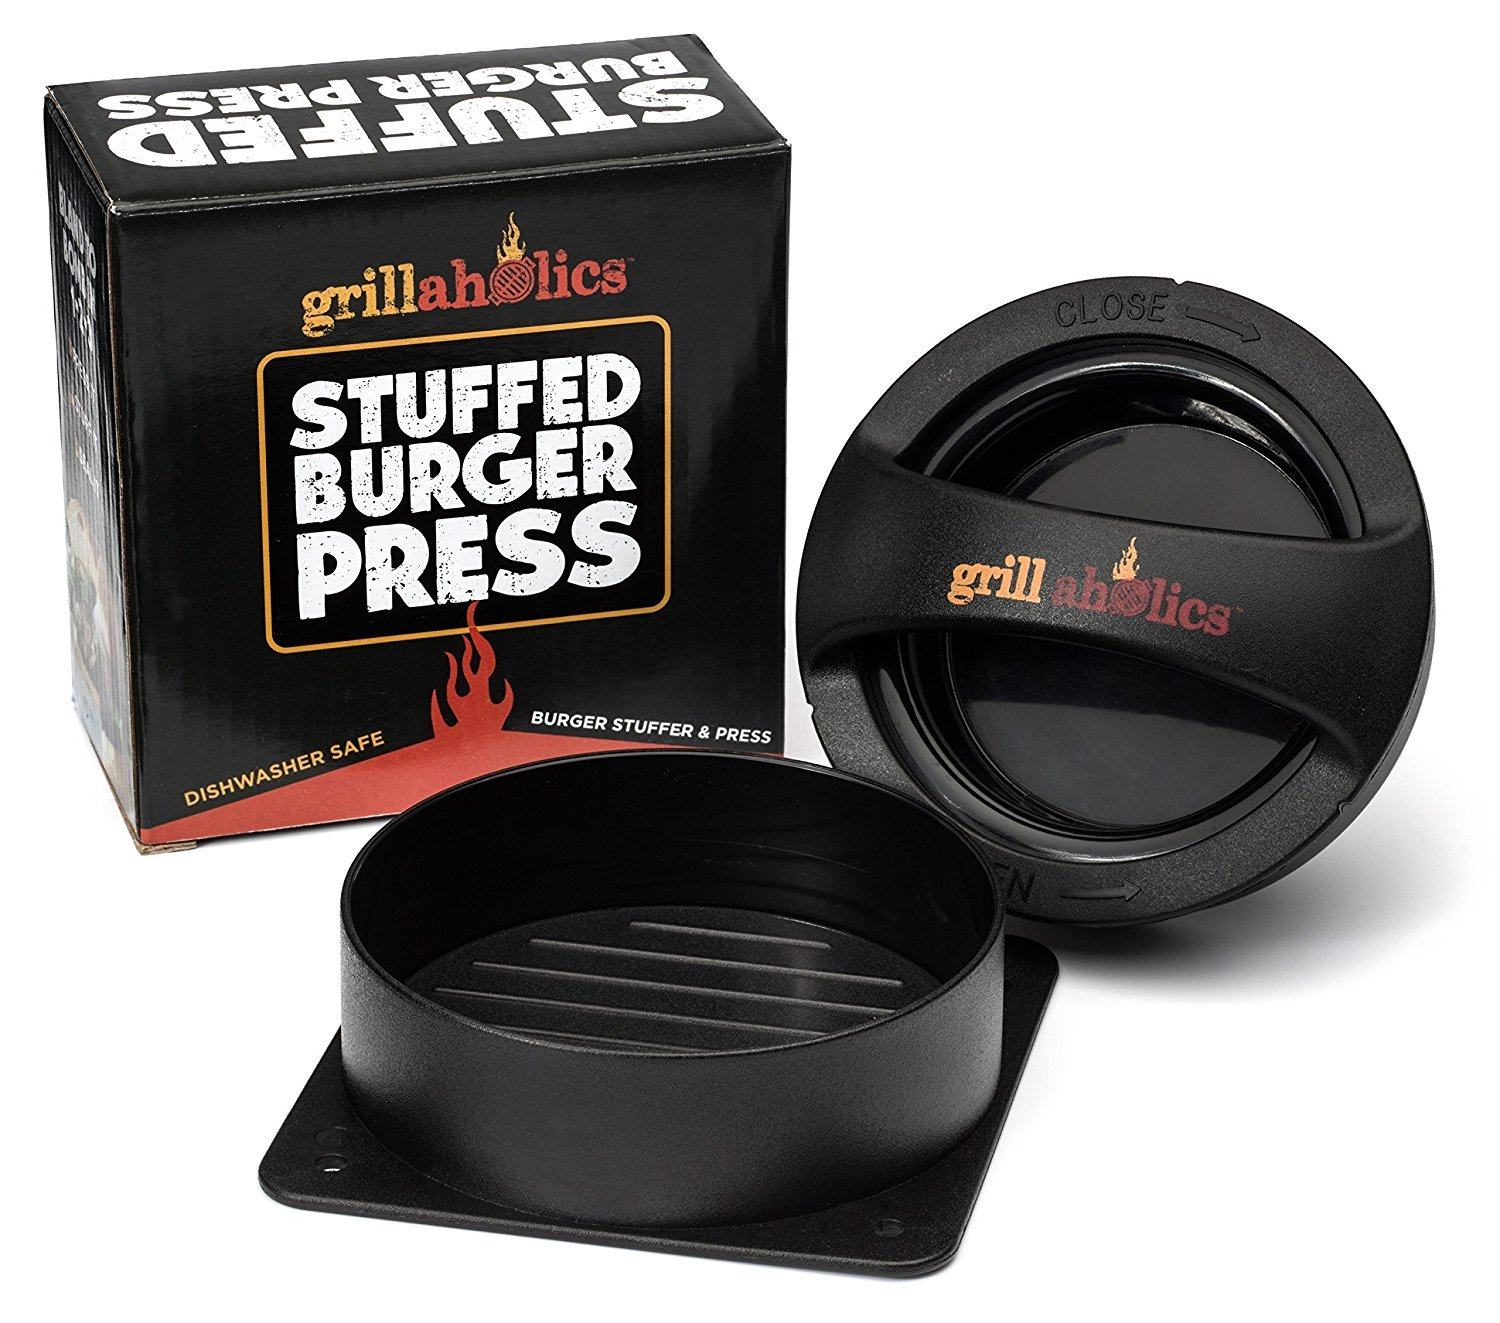 Grillaholics Stuffed Burger Press and Recipe eBook - Extended Warranty - Hamburger Patty Maker for Grilling - BBQ Grill Accessories by Grillaholics